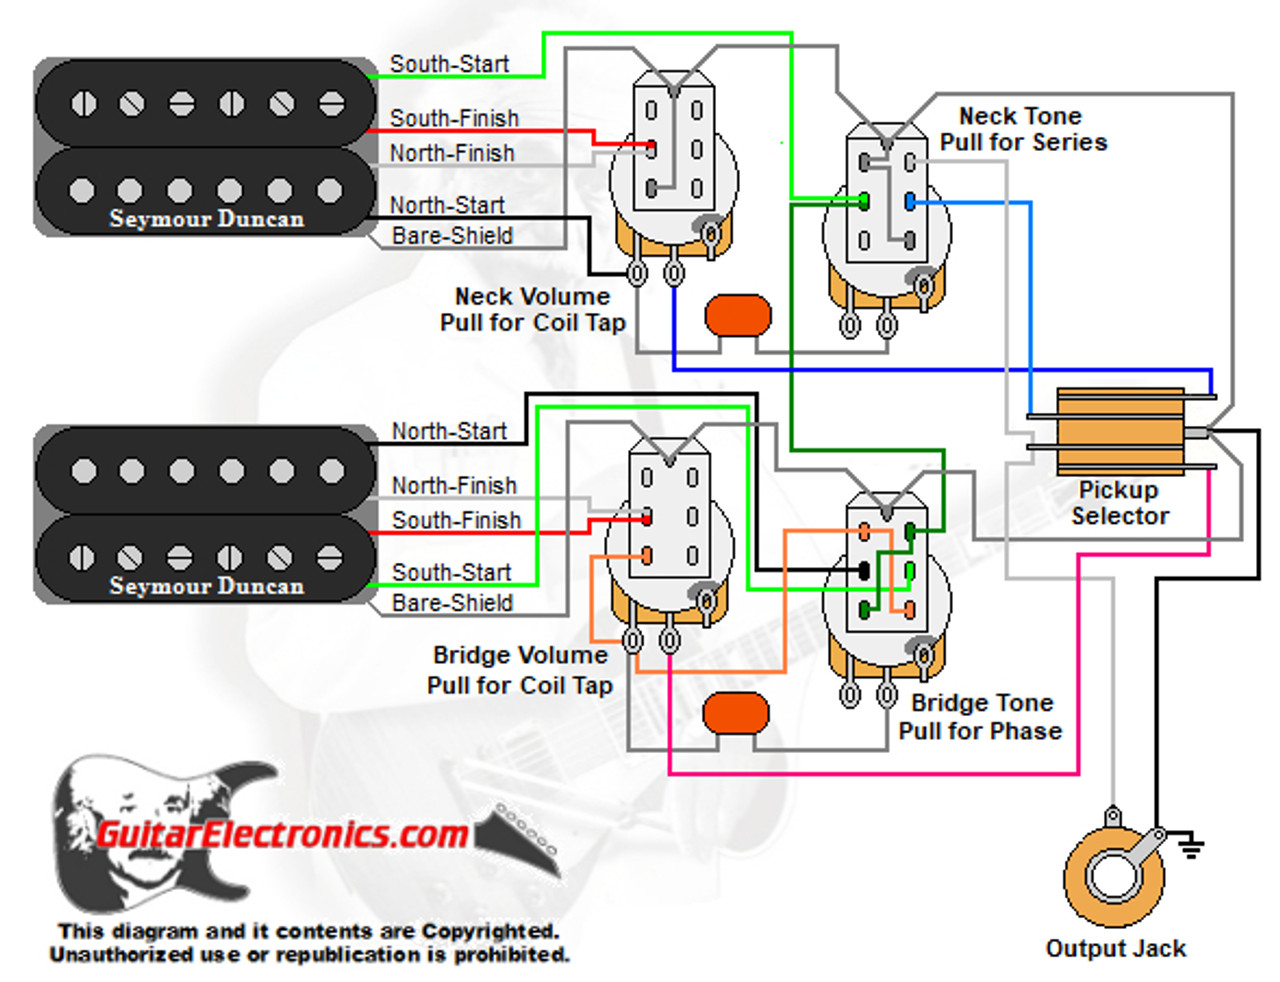 [DIAGRAM_1JK]  2 HBs/3-Way/2 Vol/2 Tone/Coil Tap Series Parallel Phase-Jimmy Page | Switch Series Wiring Diagram |  | Guitar Electronics